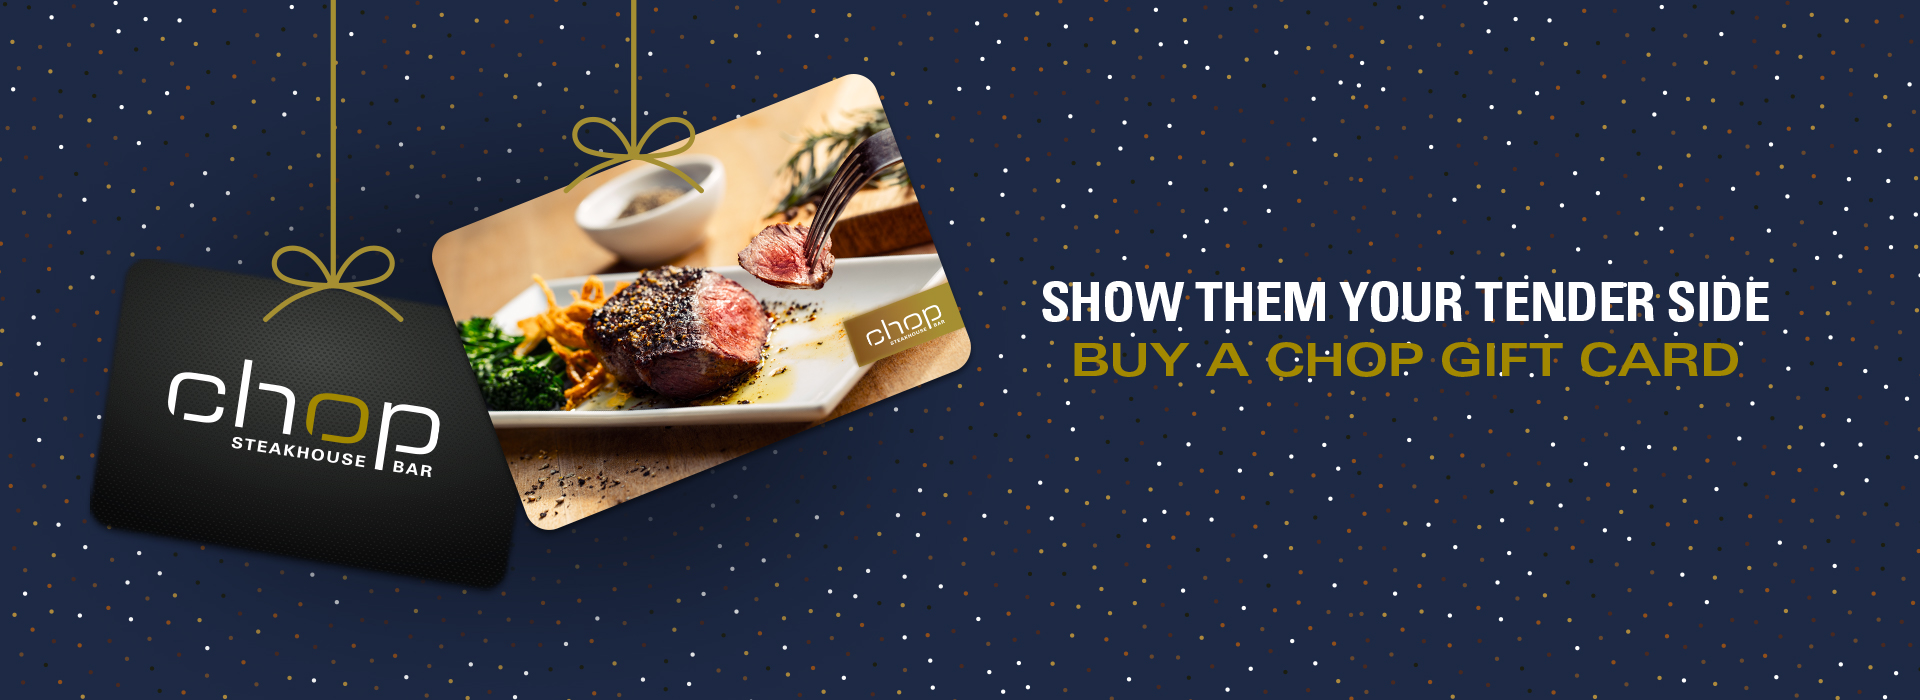 Buy a gift card.